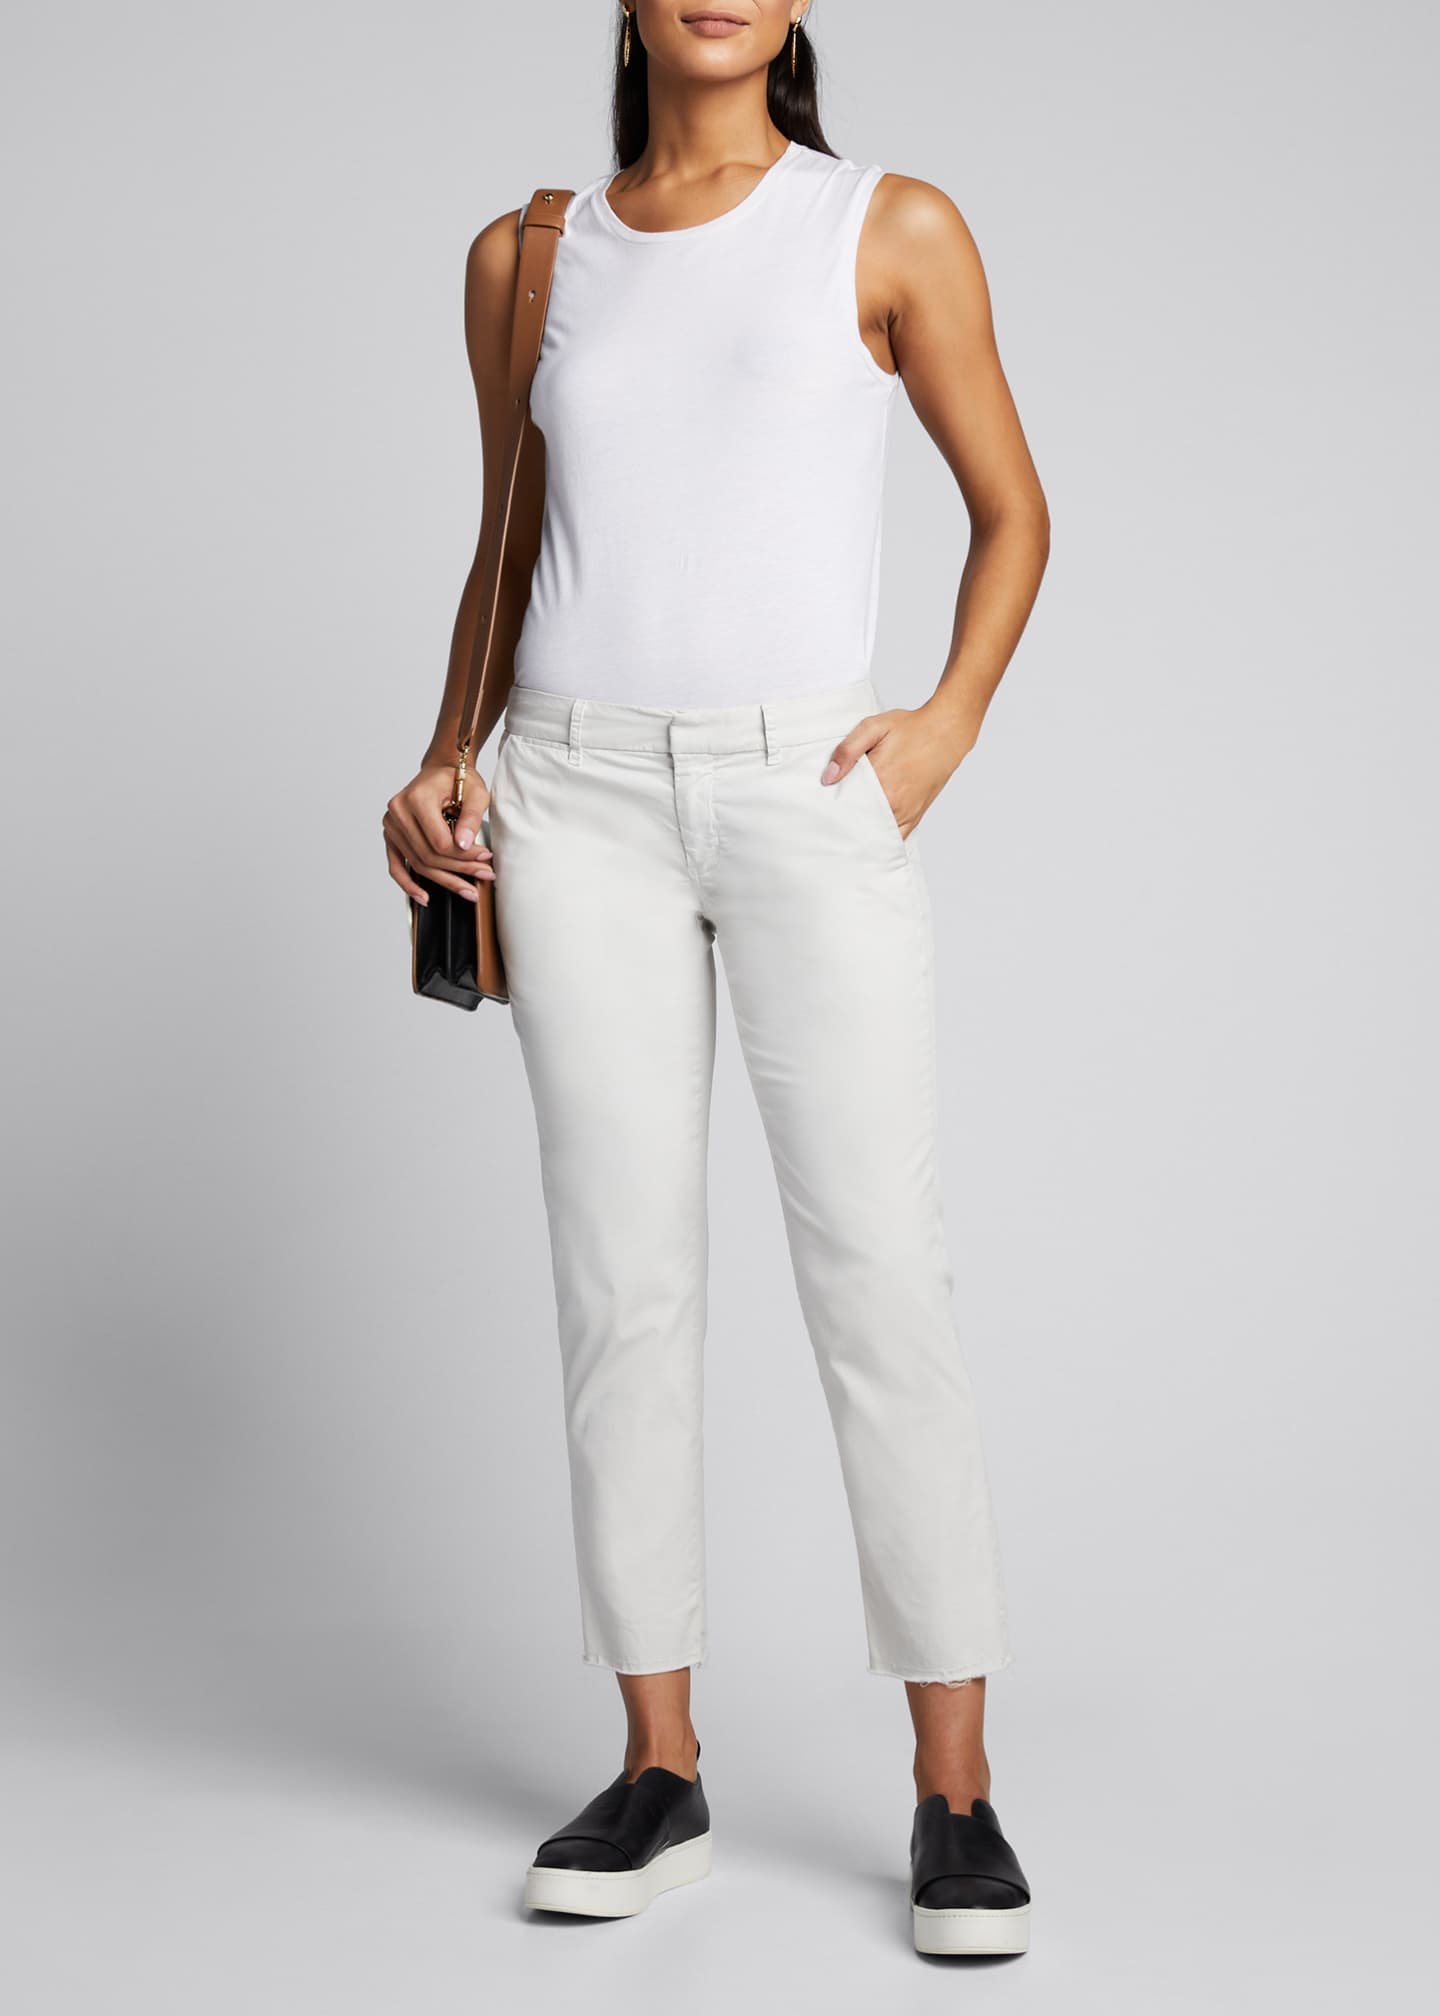 Nili Lotan East Hampton Frayed Crop Pants, White